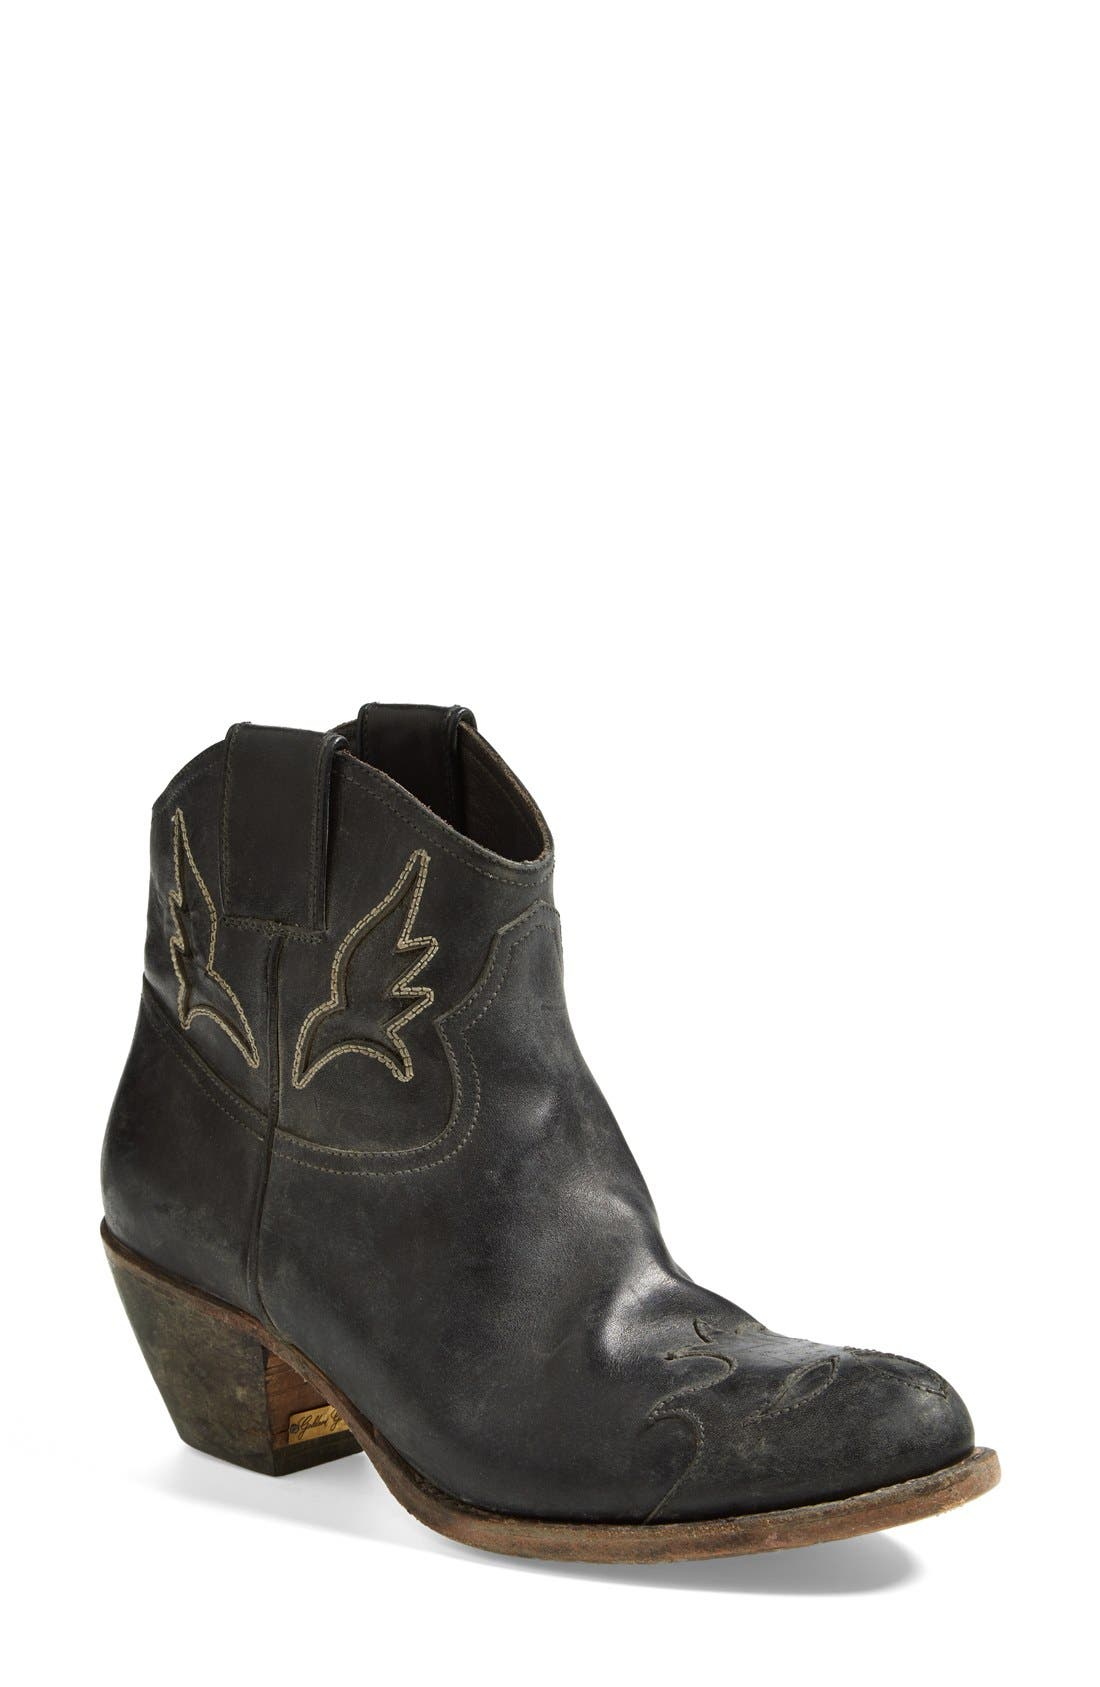 Alternate Image 1 Selected - Golden Goose 'Sydney' Western Boot (Women)